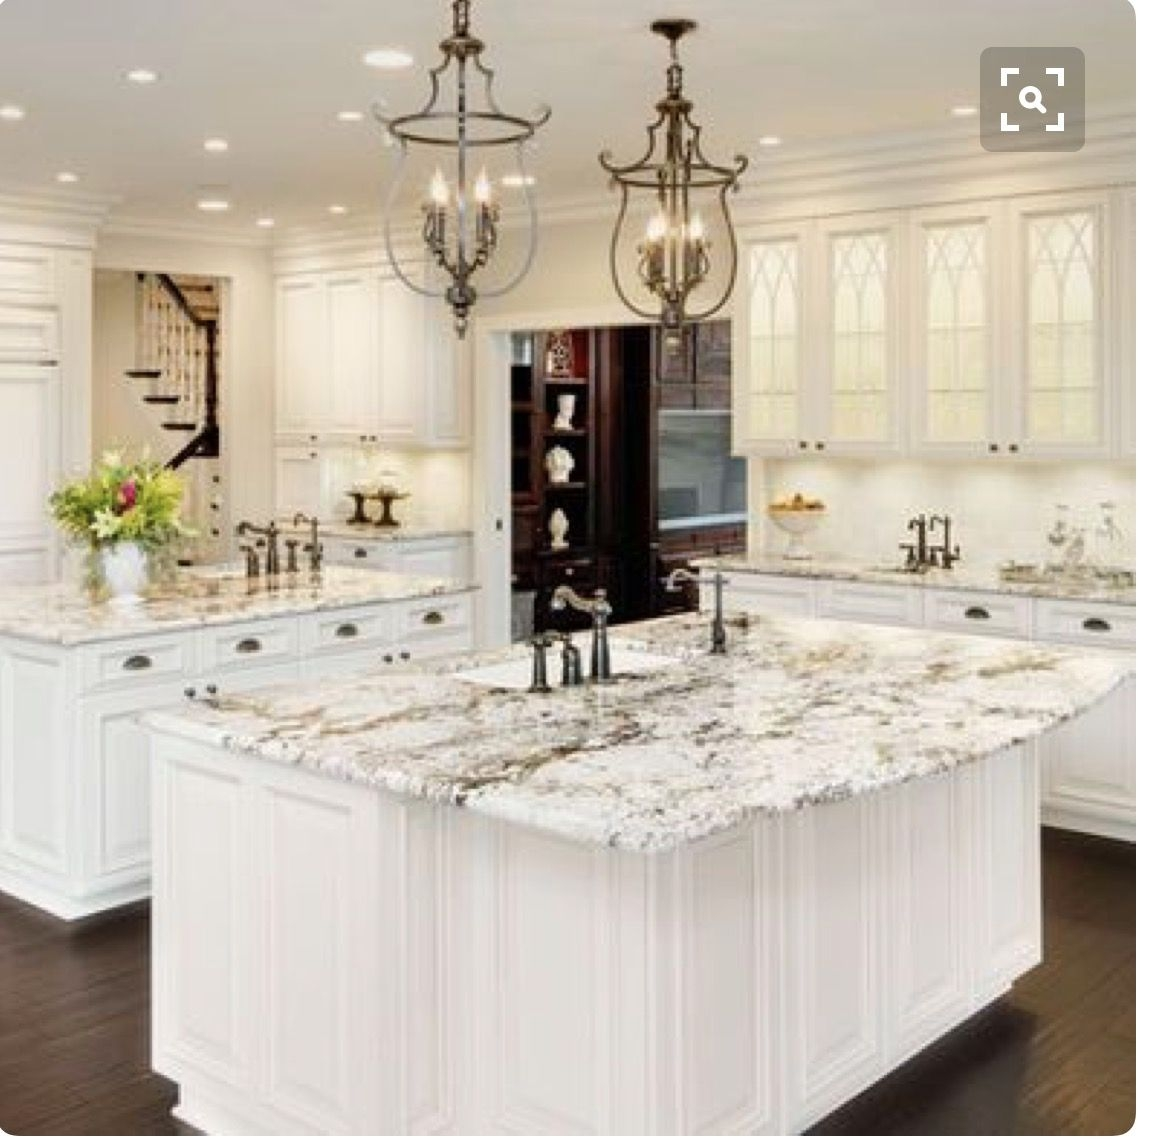 Ordinaire More Or Less Our Exact Kitchen Remodel Plan Bianco Antico